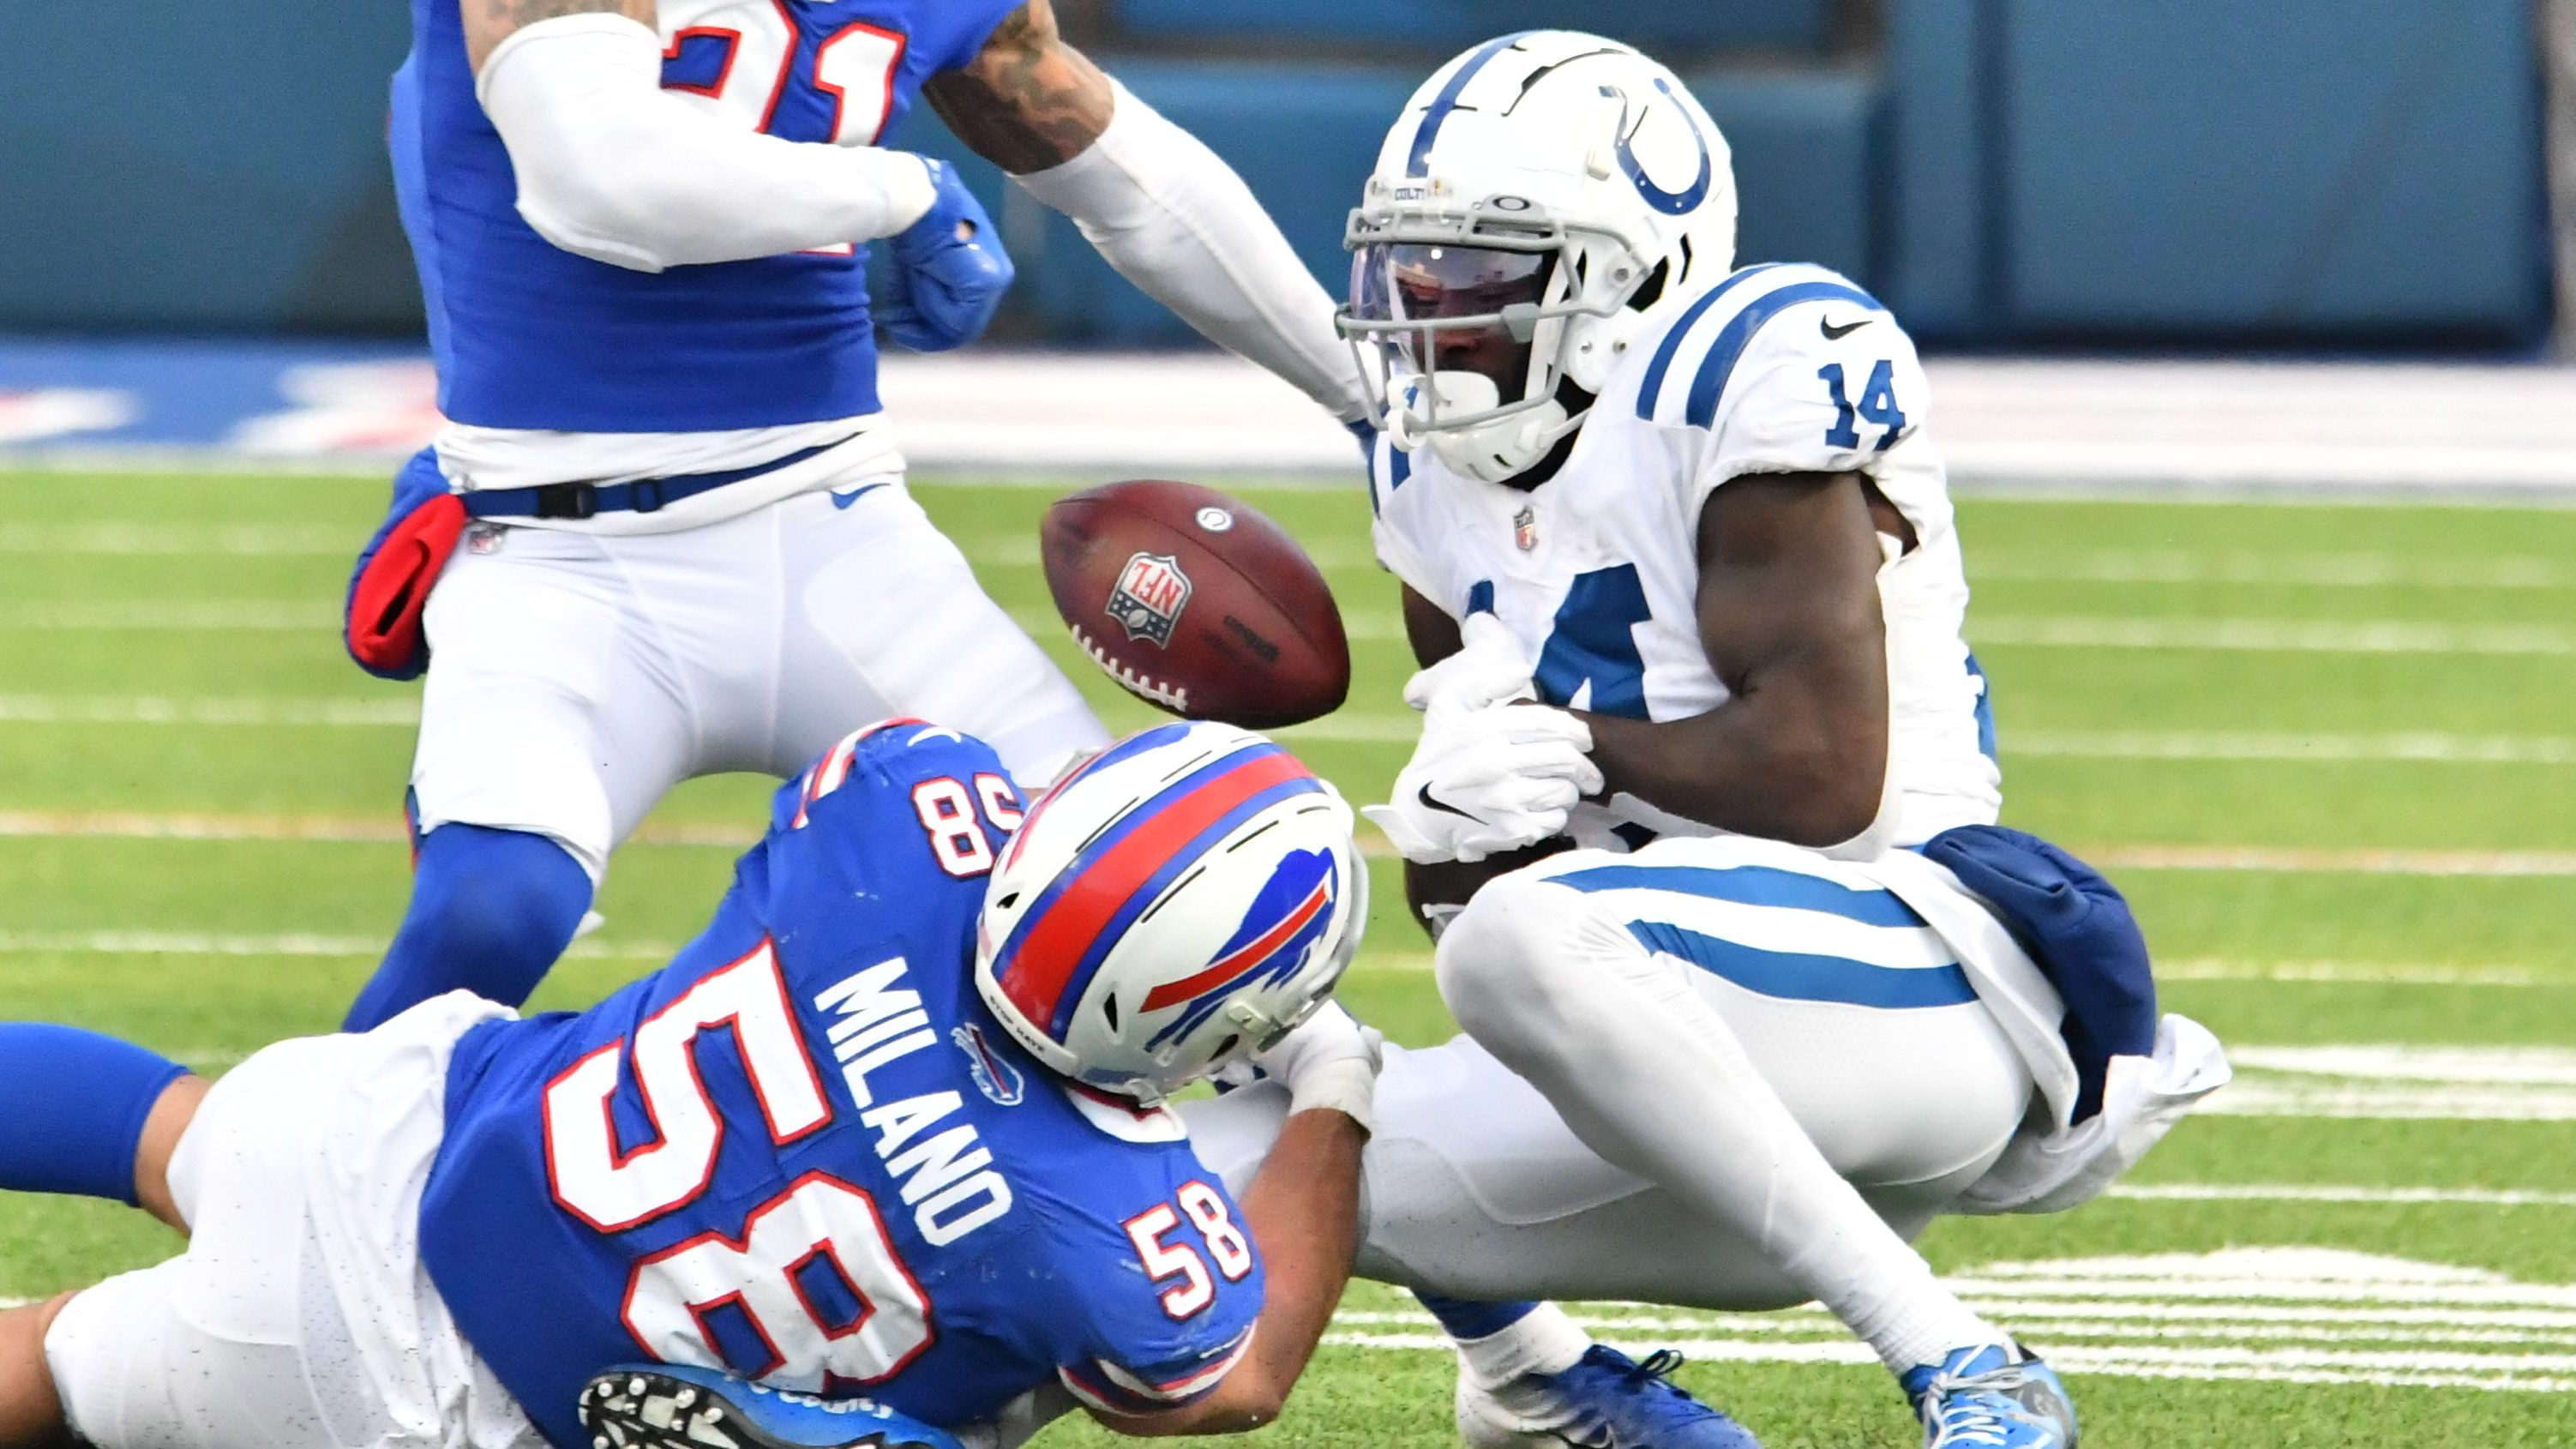 Bills got screwed on the no-fumble call on this play